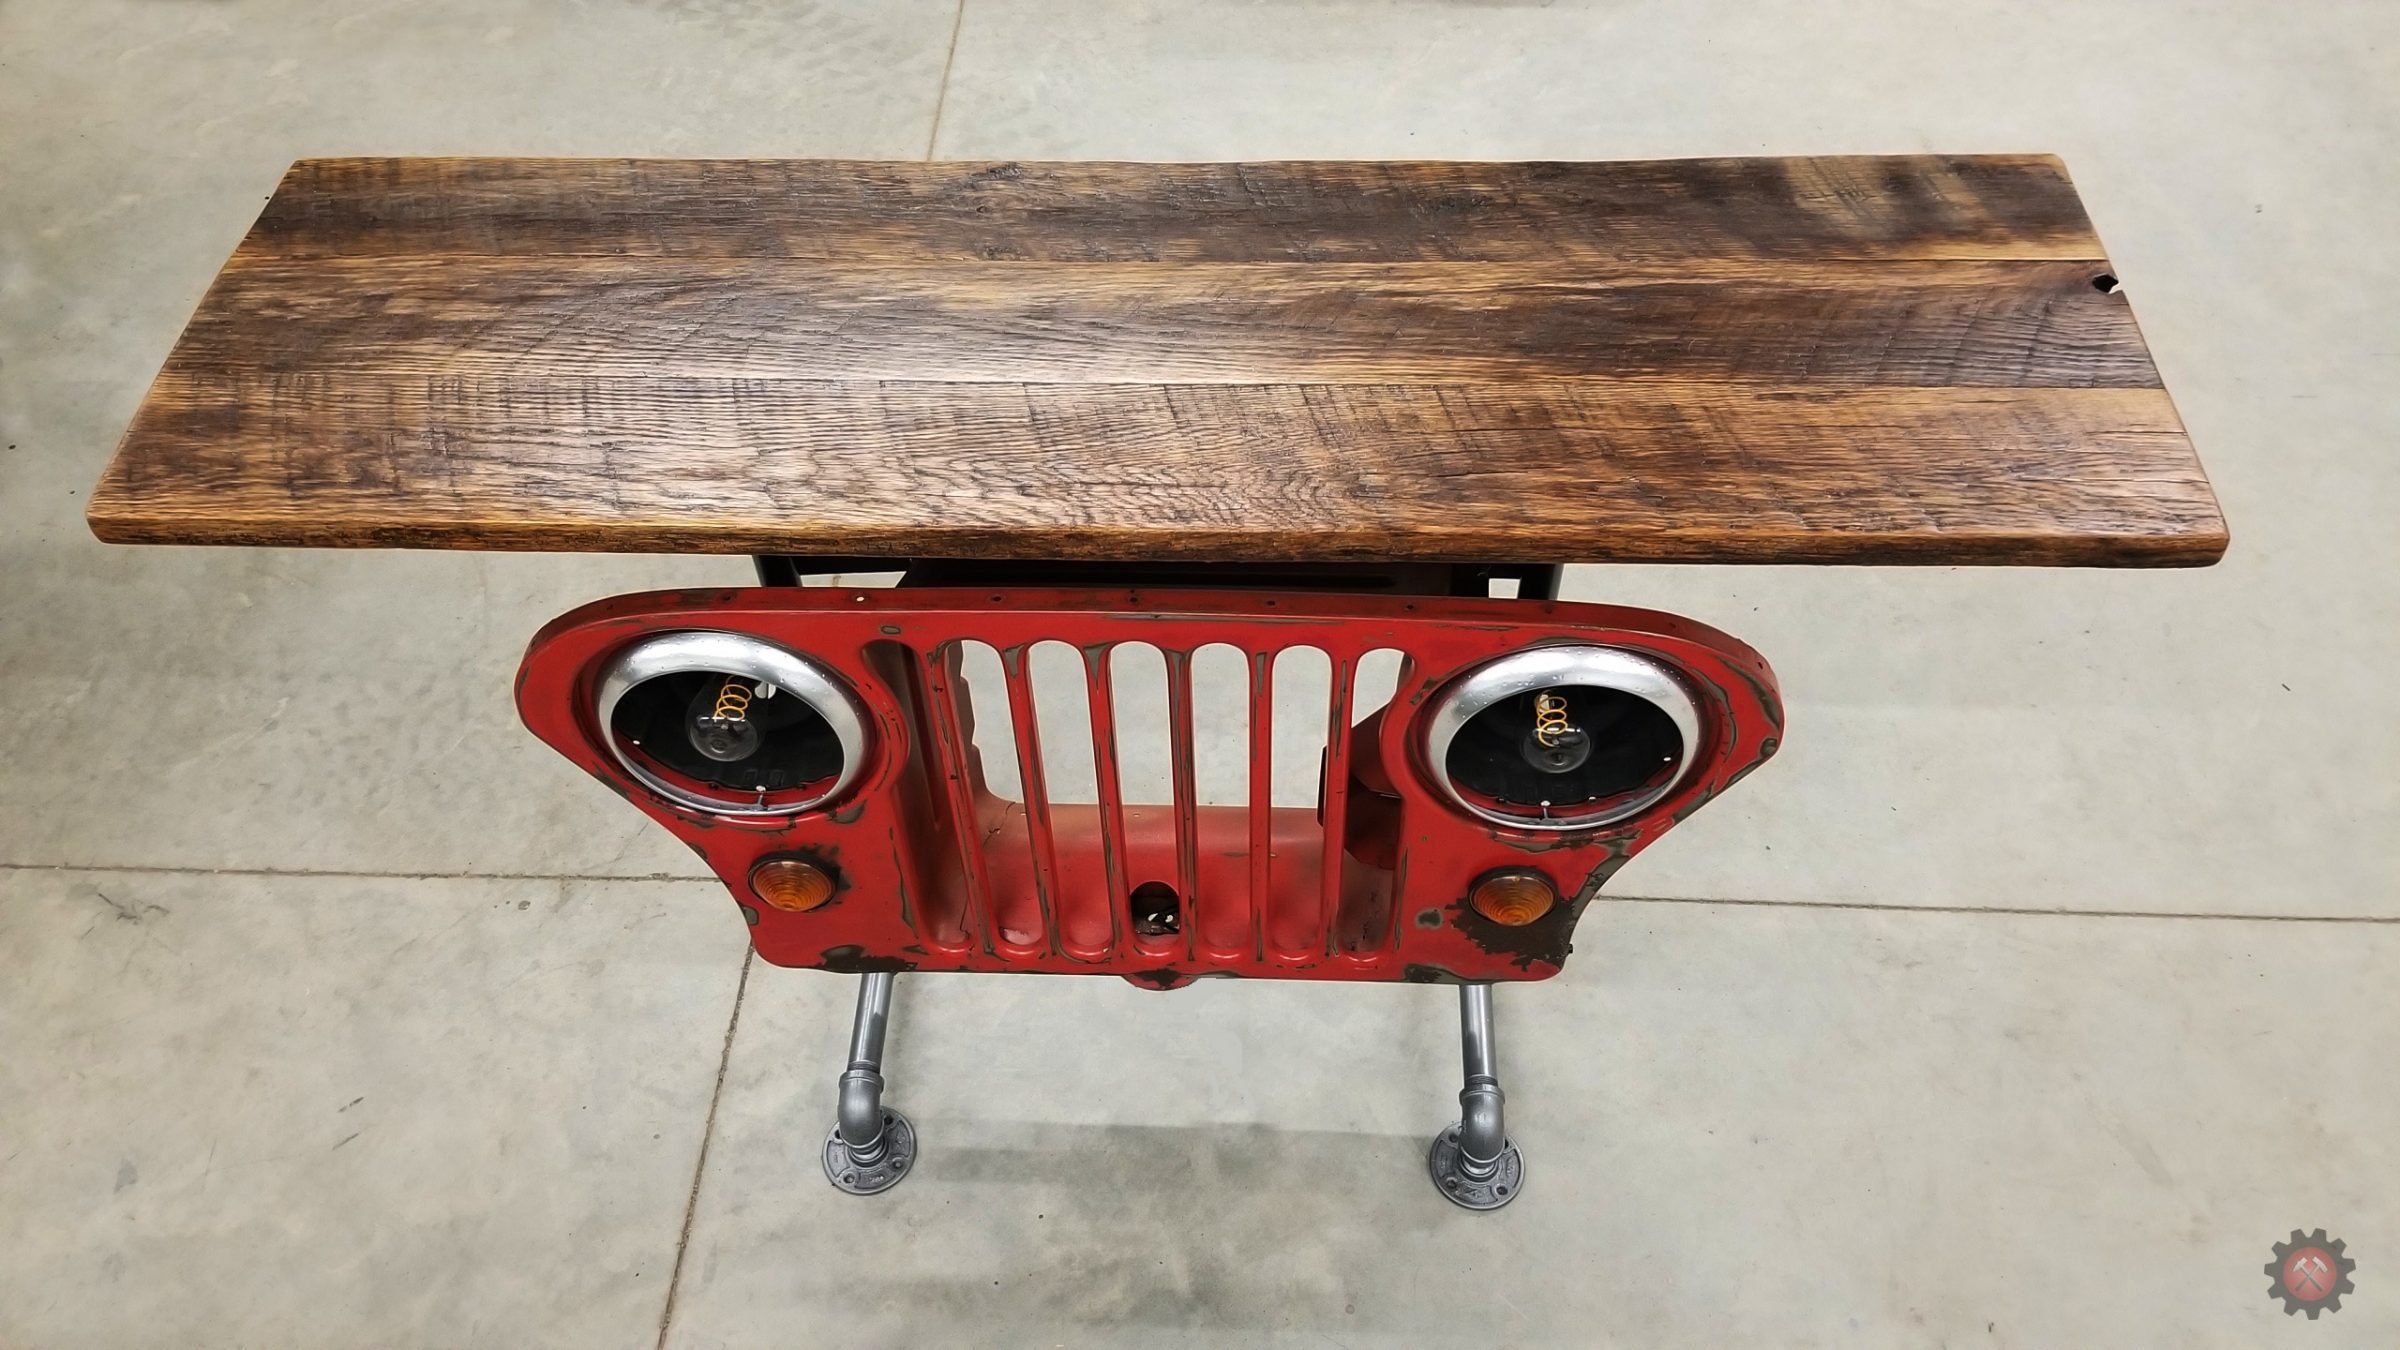 1960s Jeep Grill Parlor Table